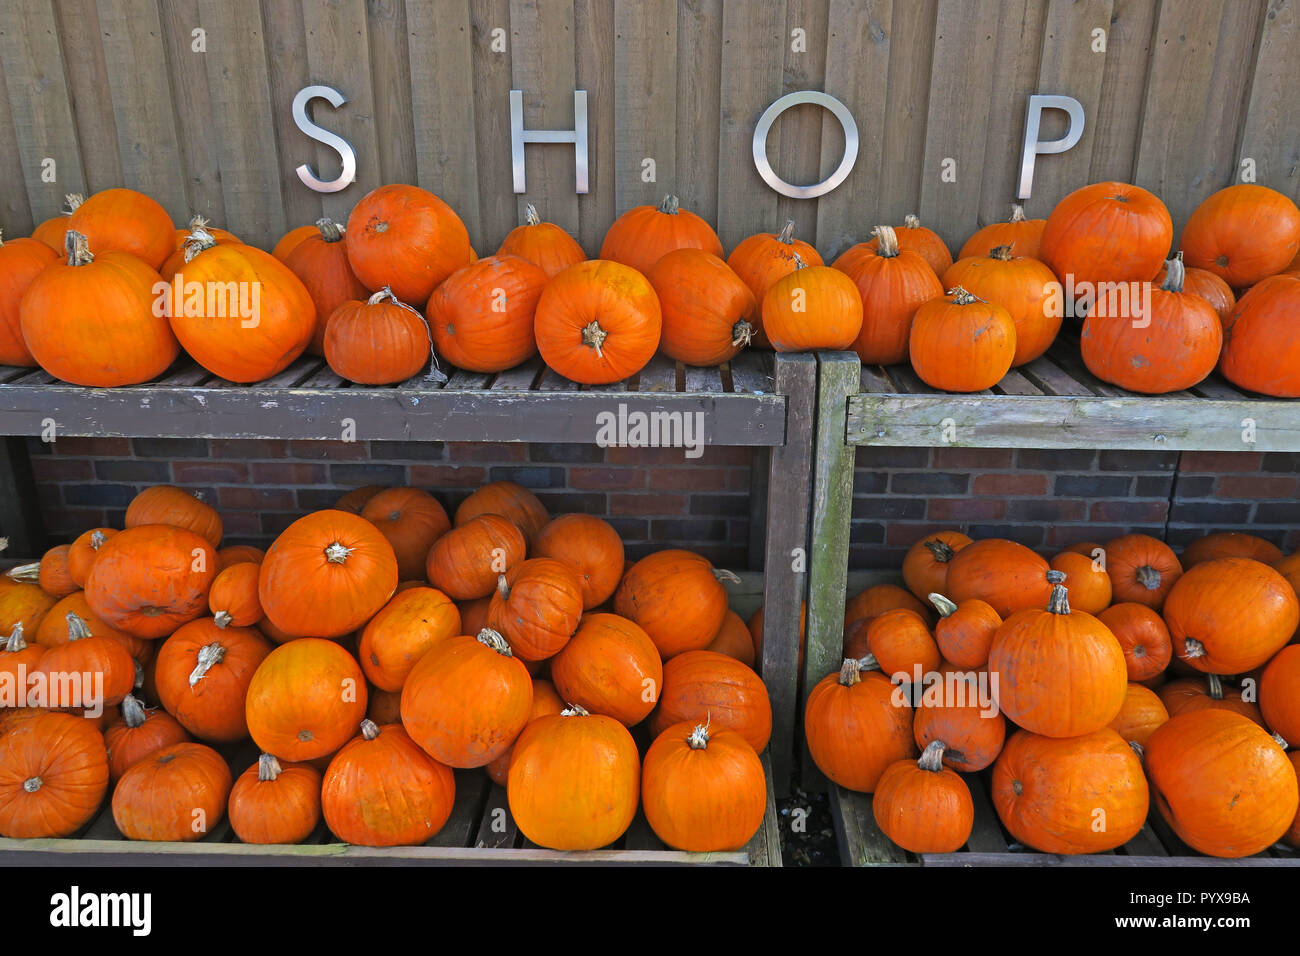 Halloween Retail shopping, Orange Pumpkins, - Stock Image